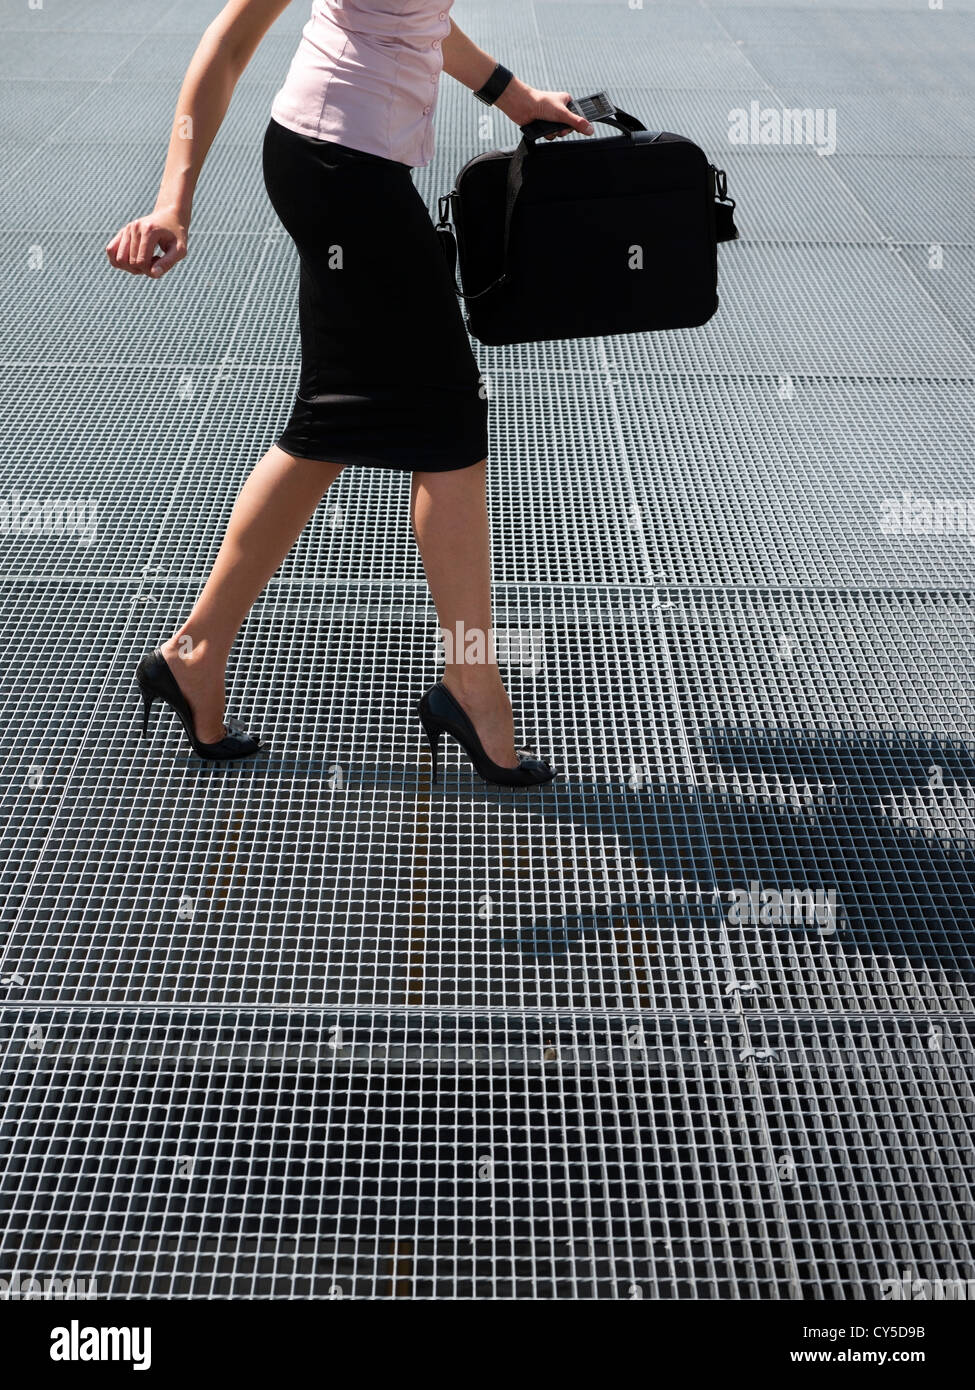 cropped view of mid adult business woman walking on high heels, trying to balance on grating - Stock Image